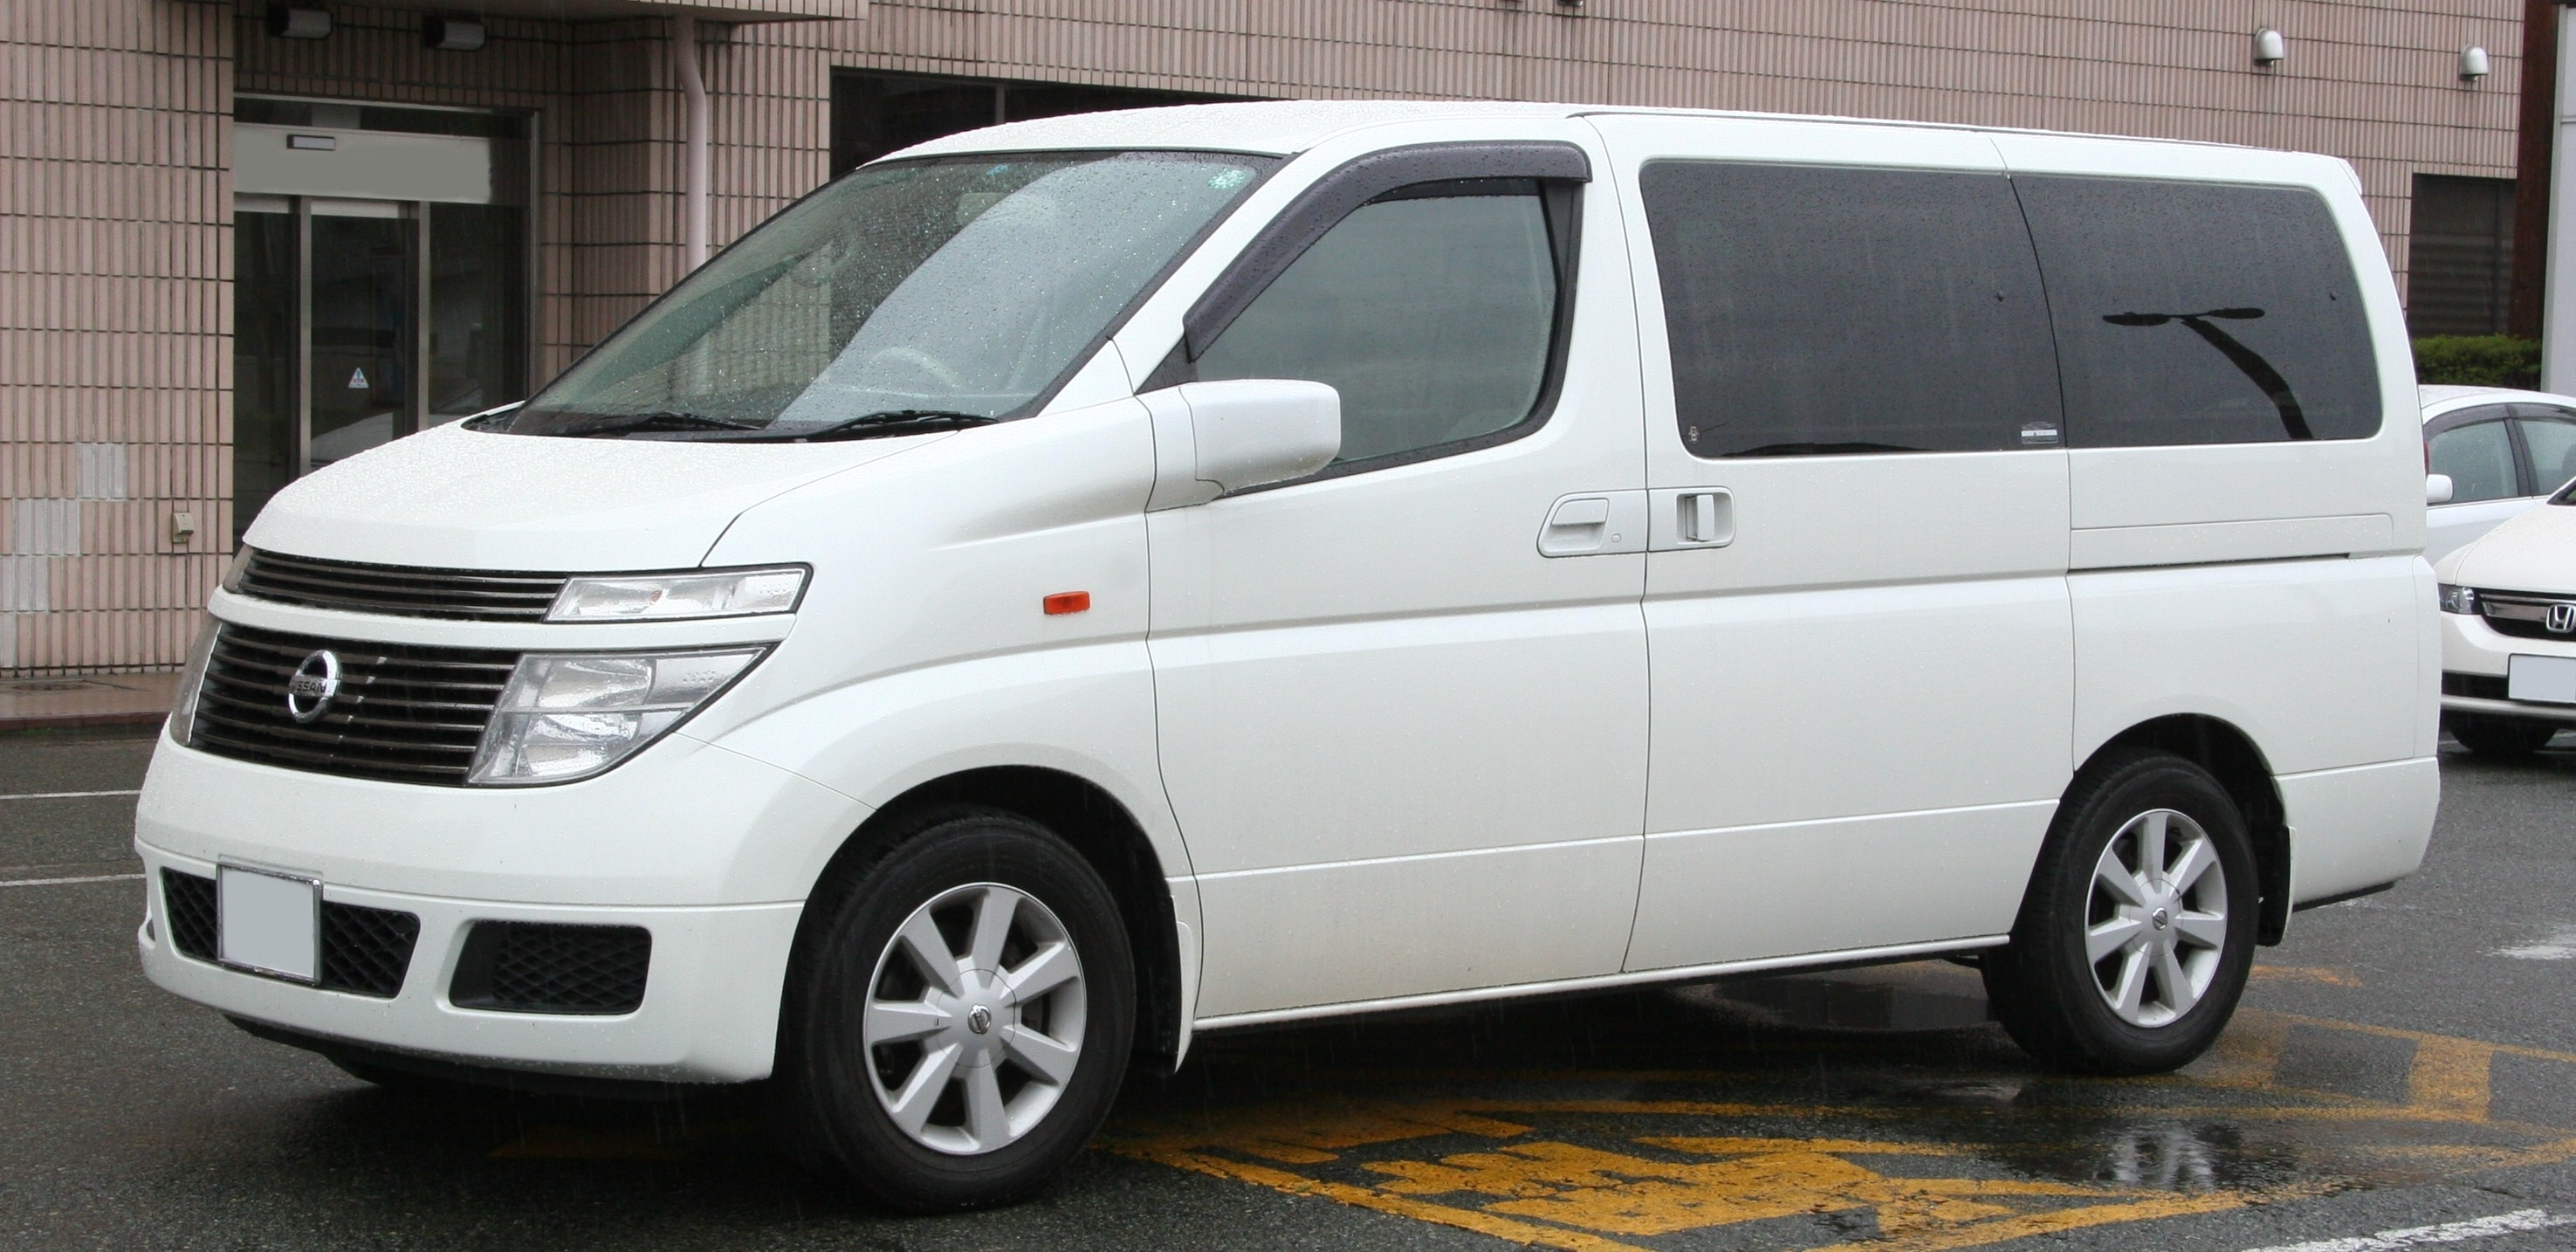 Nissan Elgrand Is Not A Car From England Image 2